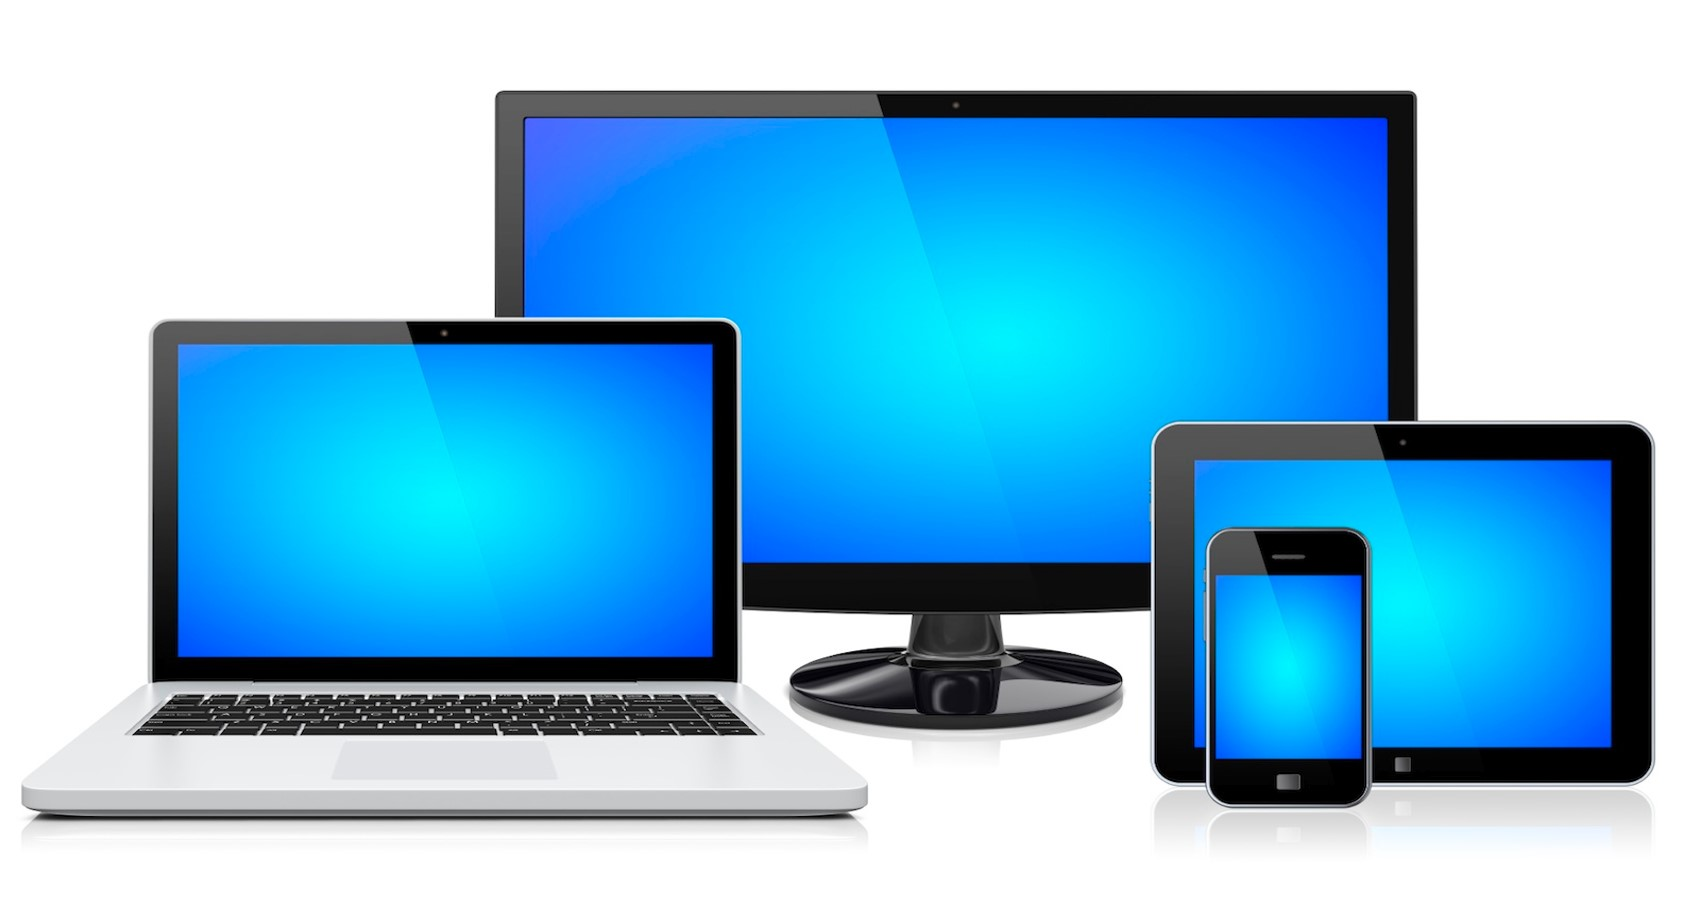 Anytime eLearning™ Optimizes to Your Device